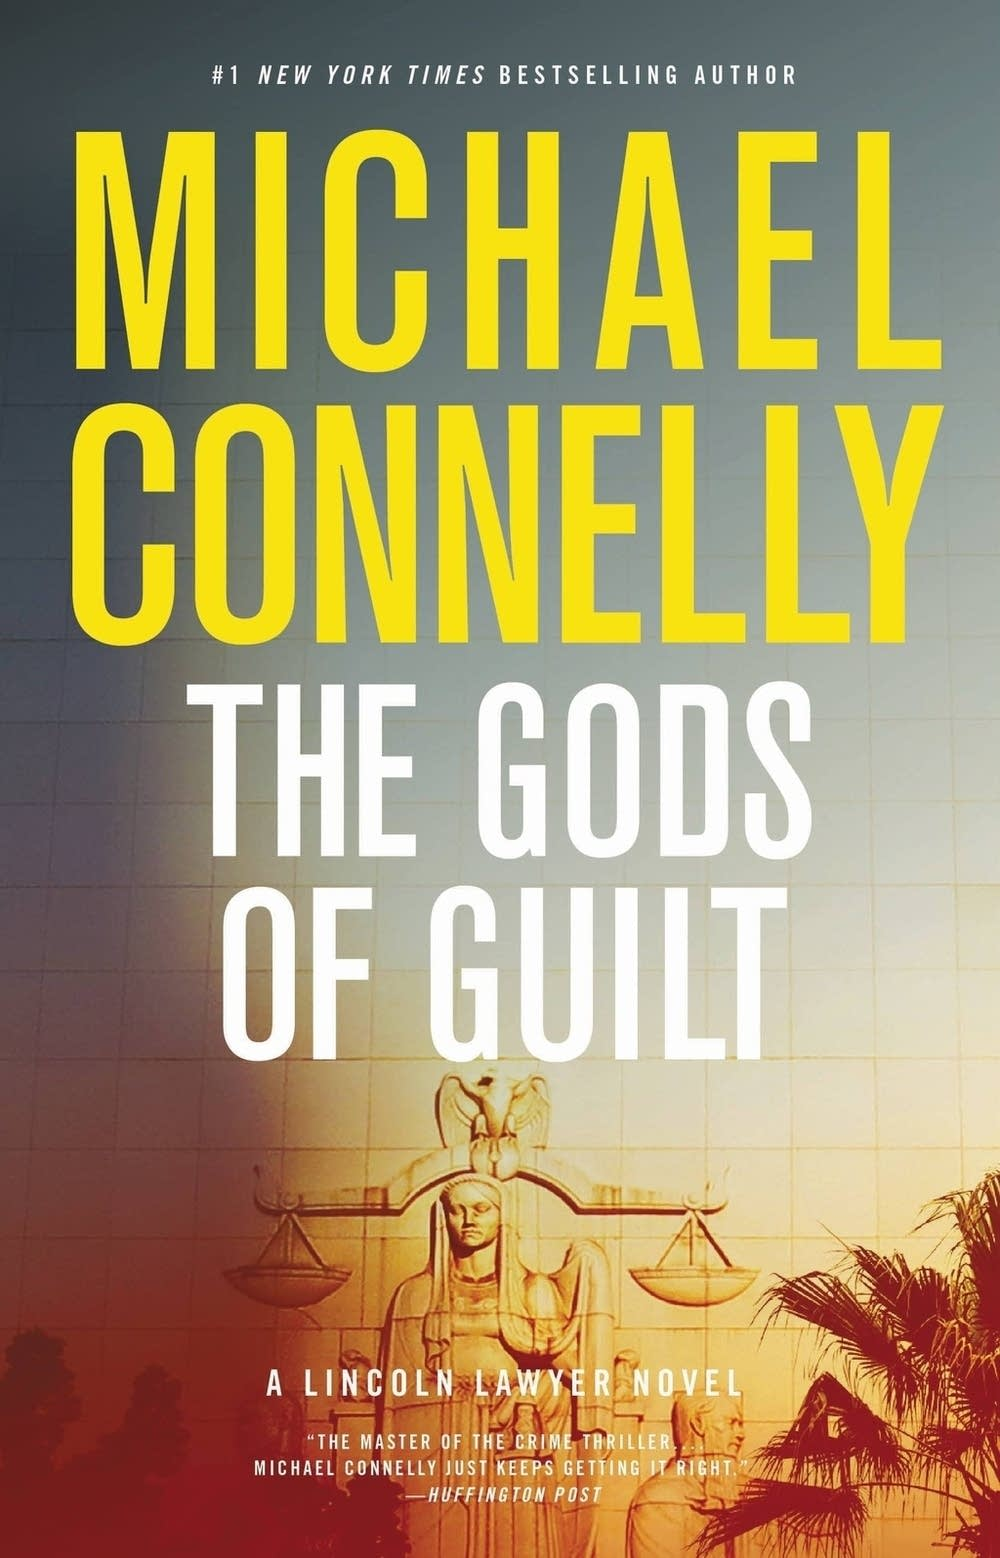 'The Gods of Guilt' by Michael Connelly